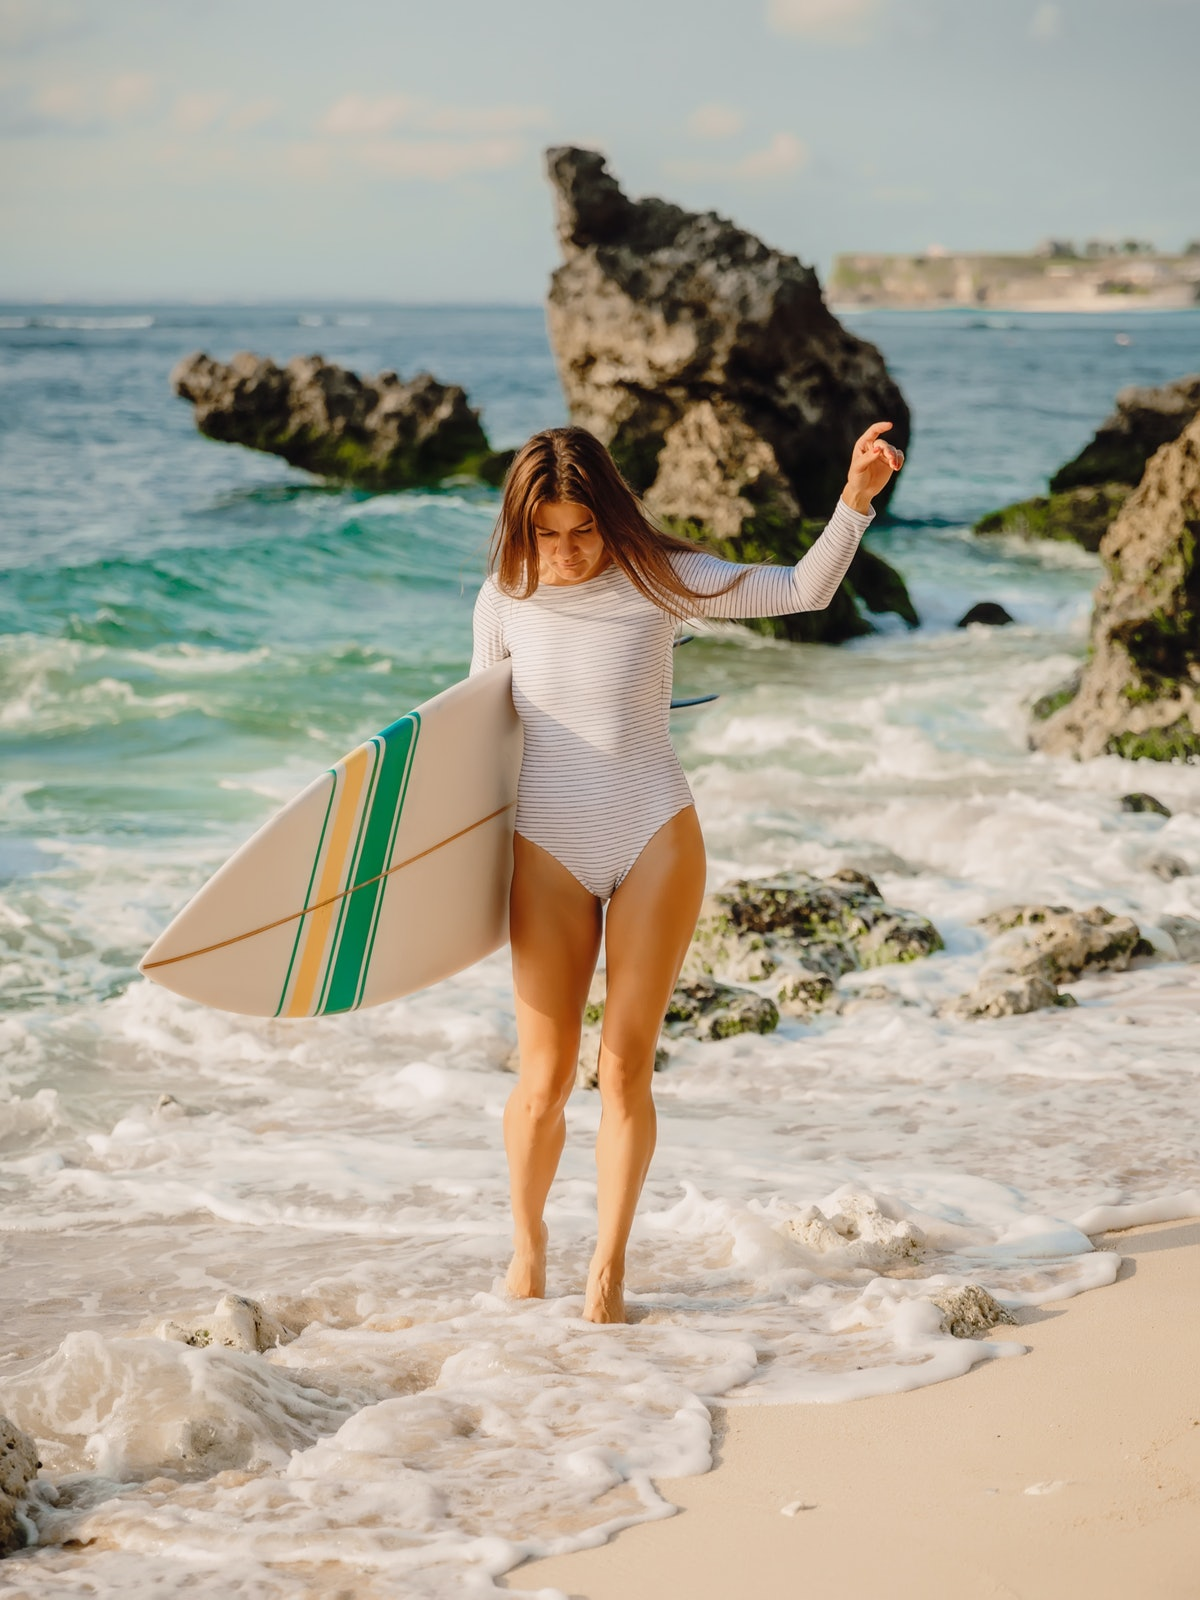 A woman in a striped one-piece bathing walks out of the ocean in Maui with her surfboard.